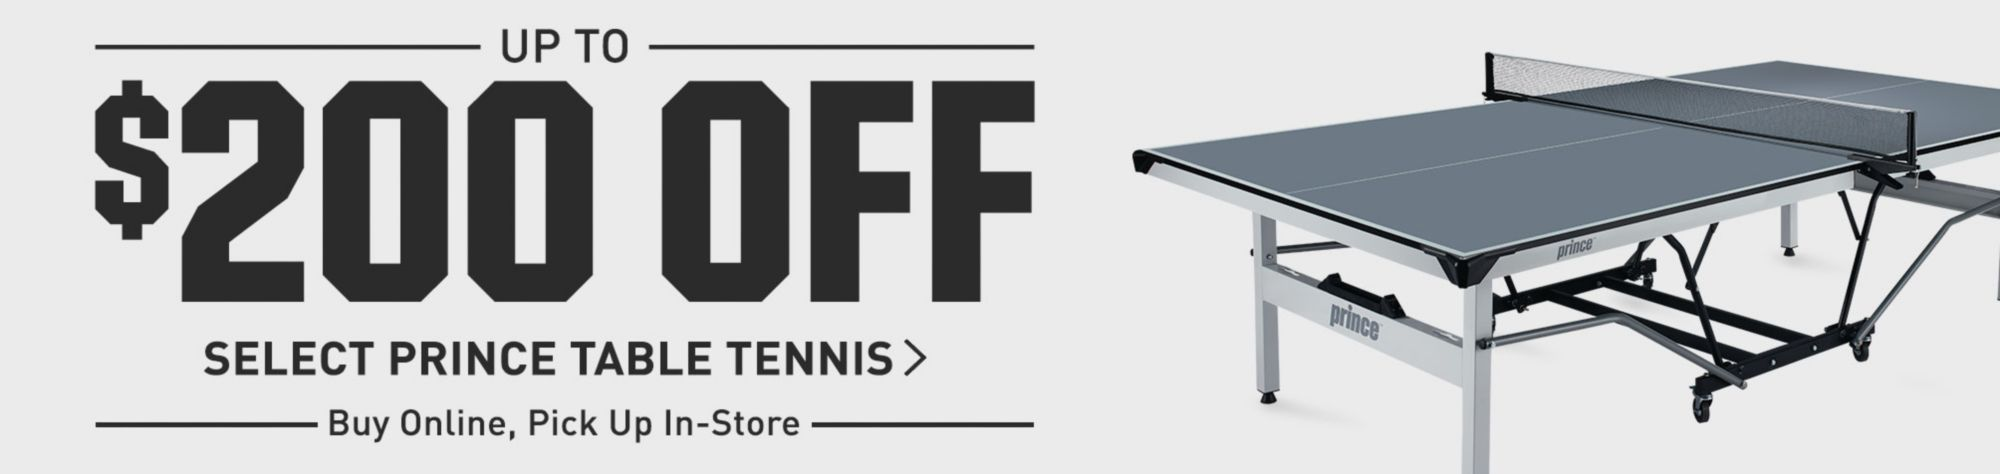 Up to $200 Off Select Prince Table Tennis Tables